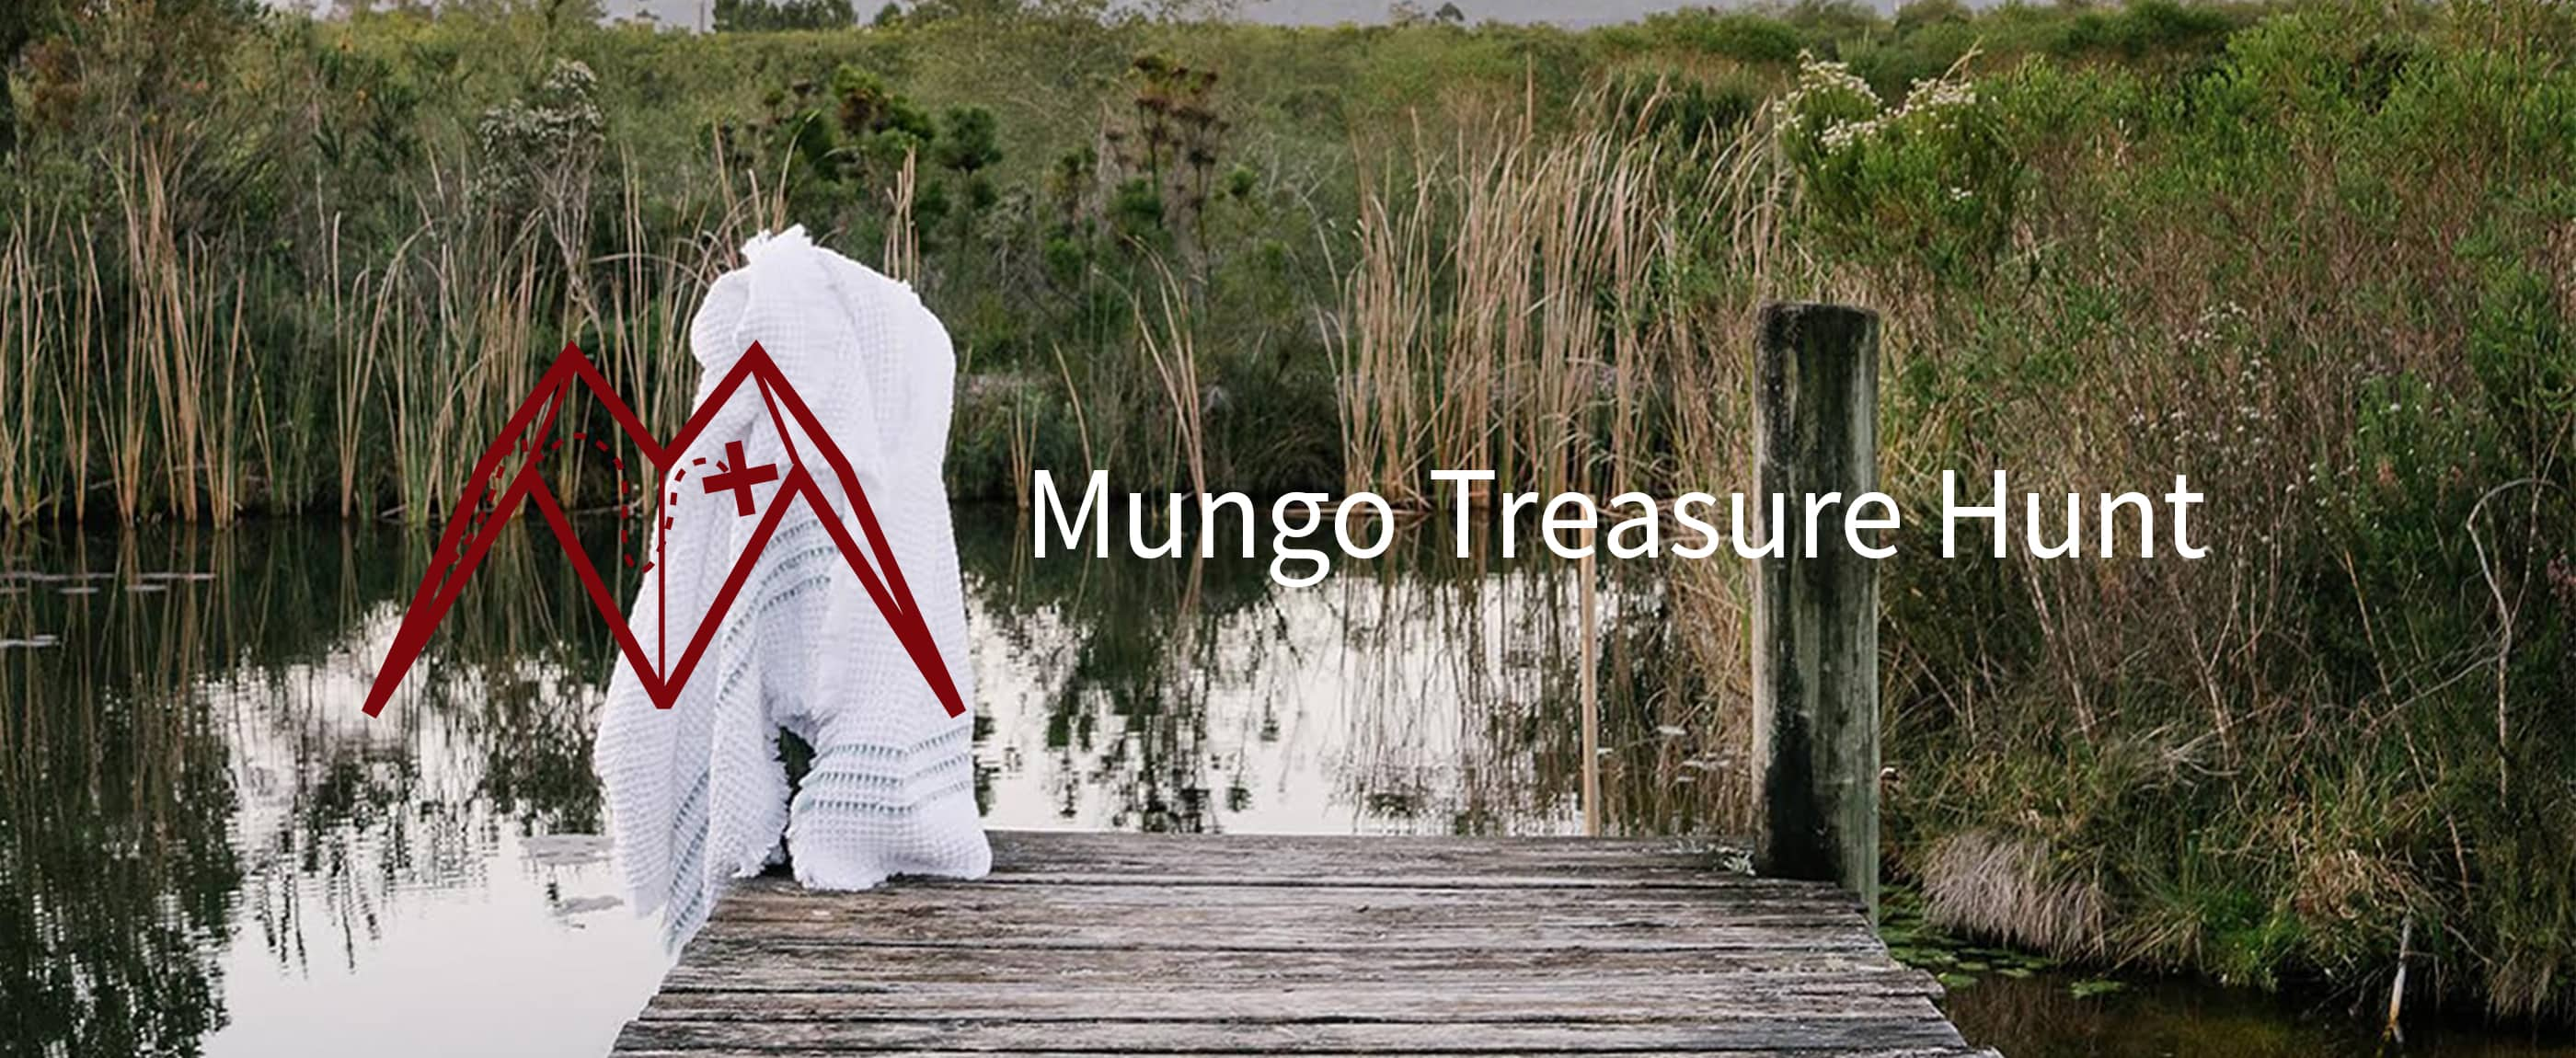 Mungo Treasure Hunt - solve daily riddles through the first week of September to discover products discounted by 40%